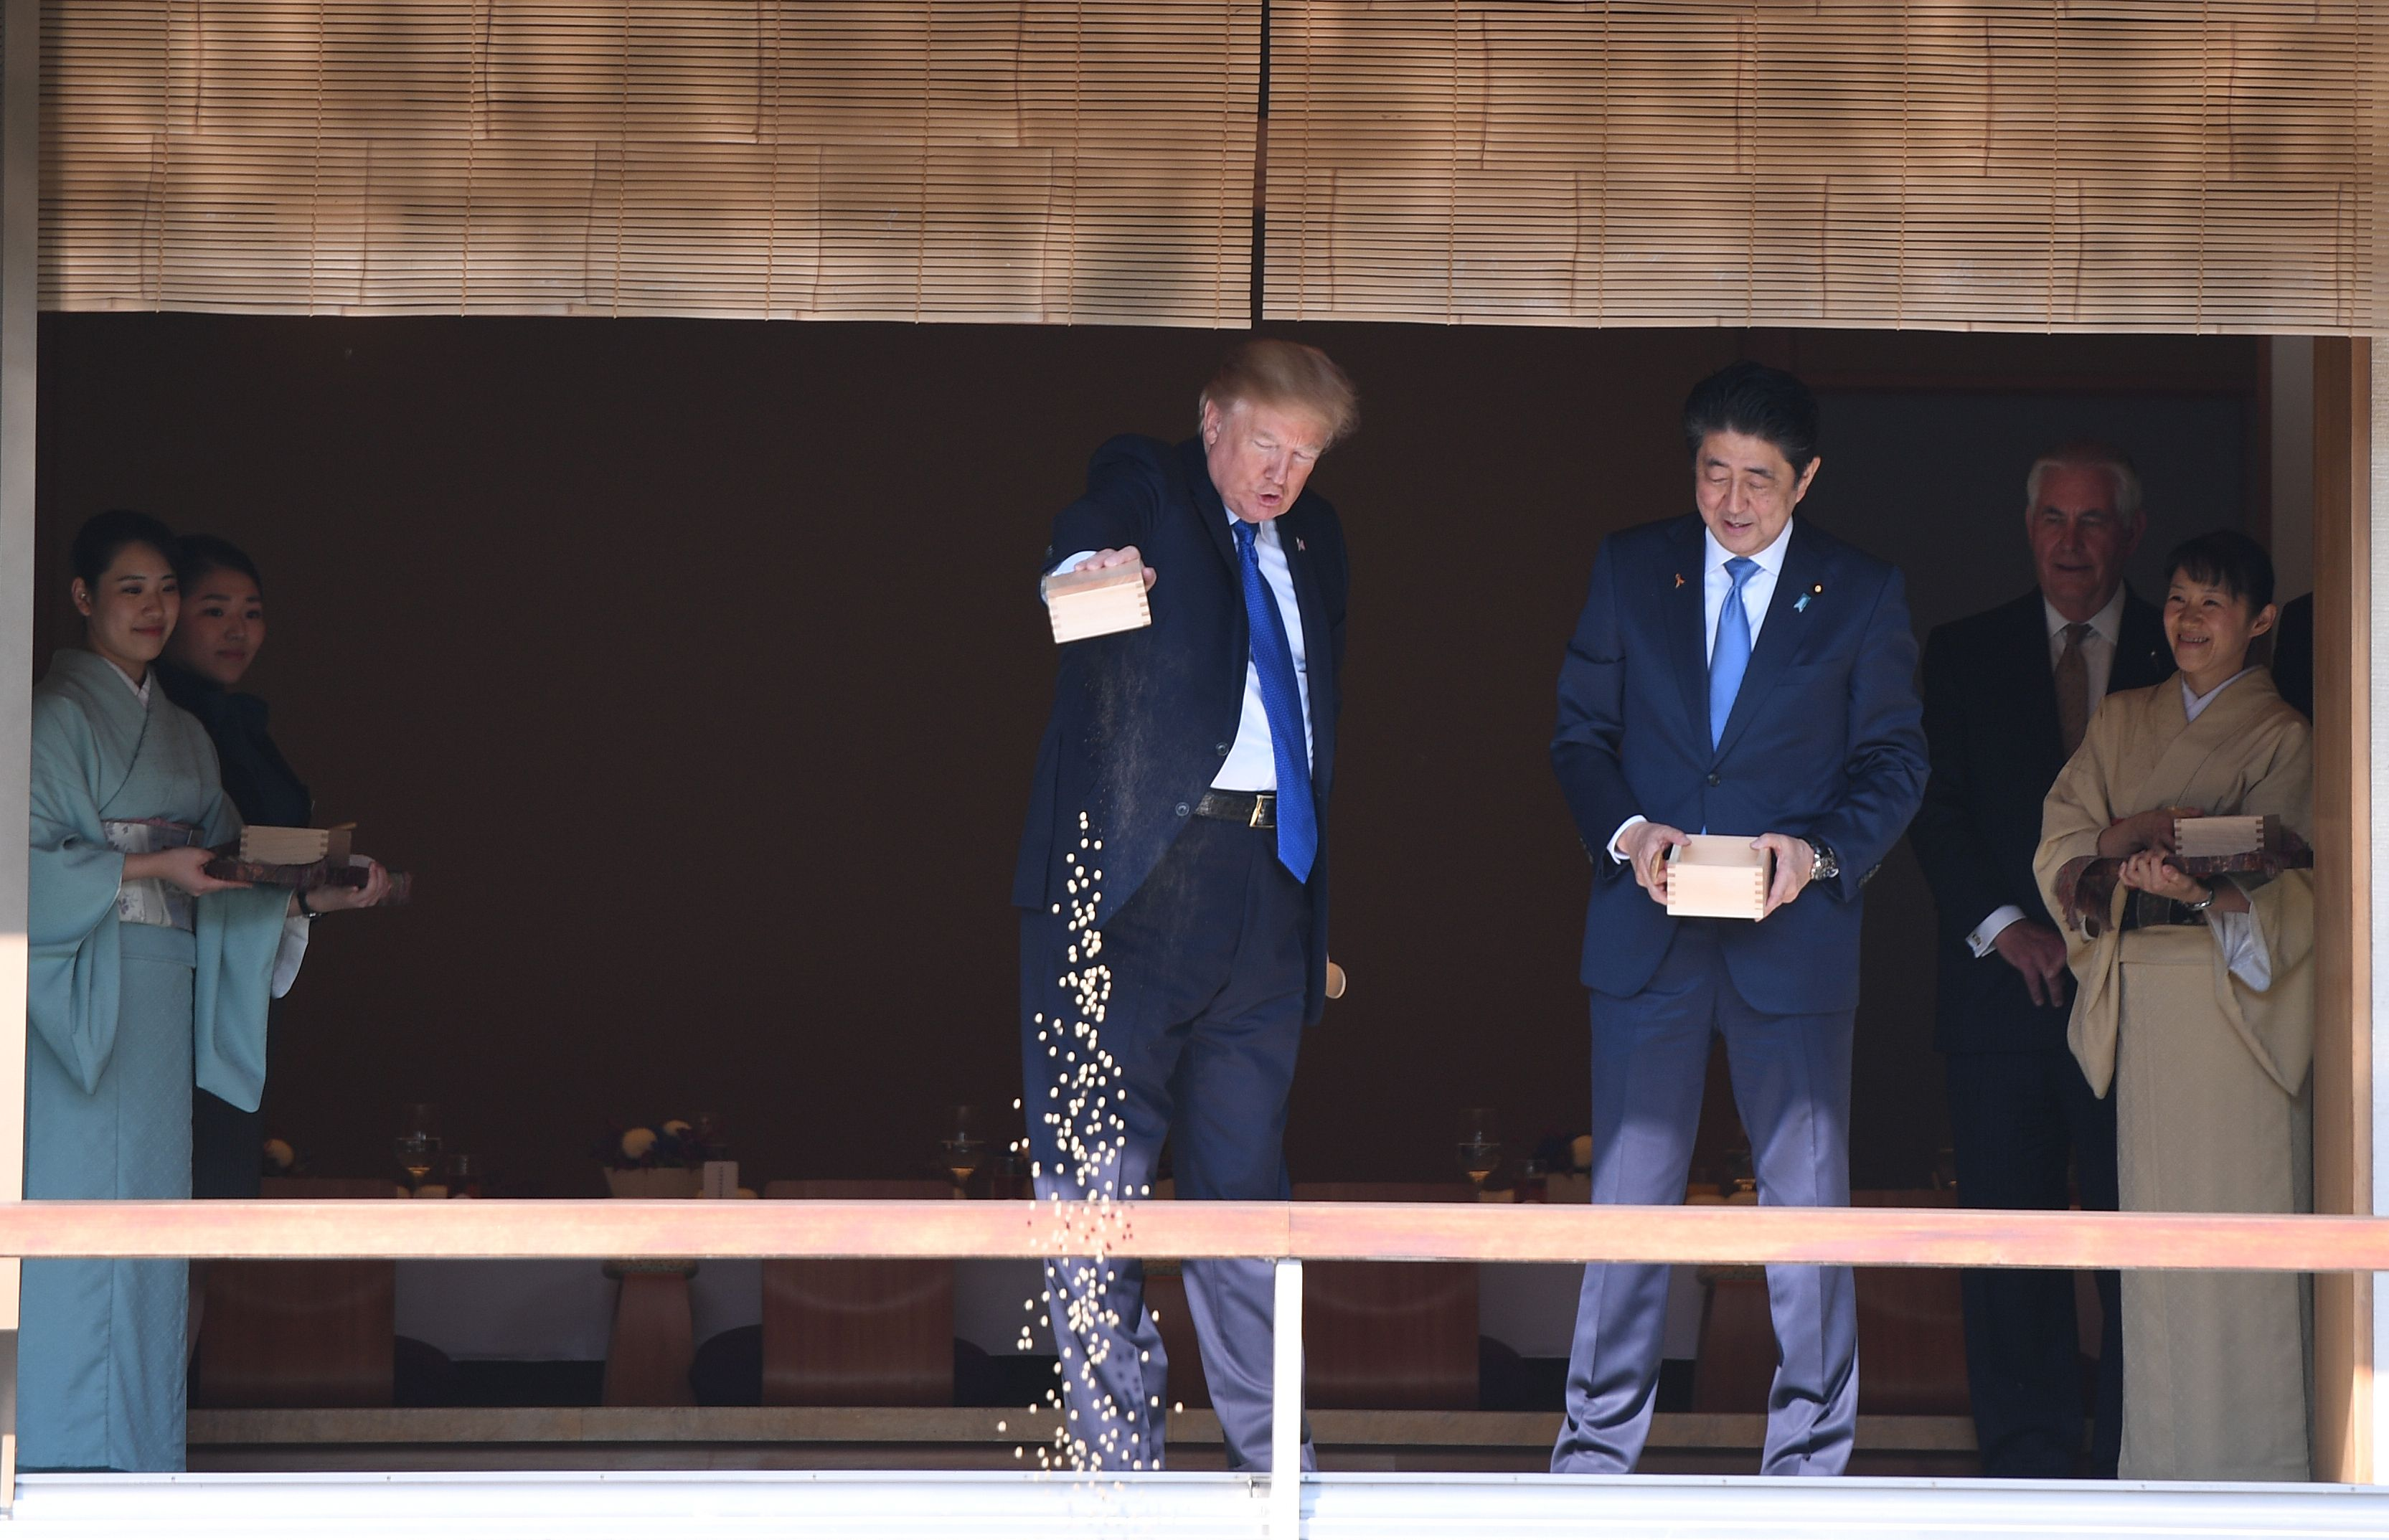 """TOPSHOT - US President Donald Trump (C) feeds koi fish as Japanese Prime Minister Shinzo Abe (R)looks on during a welcoming ceremony in Tokyo on November 6, 2017. Trump lashed out at the US trade relationship with Japan, saying it was """"not fair and open"""", as he prepared for formal talks with his Japanese counterpart. JIM WATSON/AFP/Getty Images"""